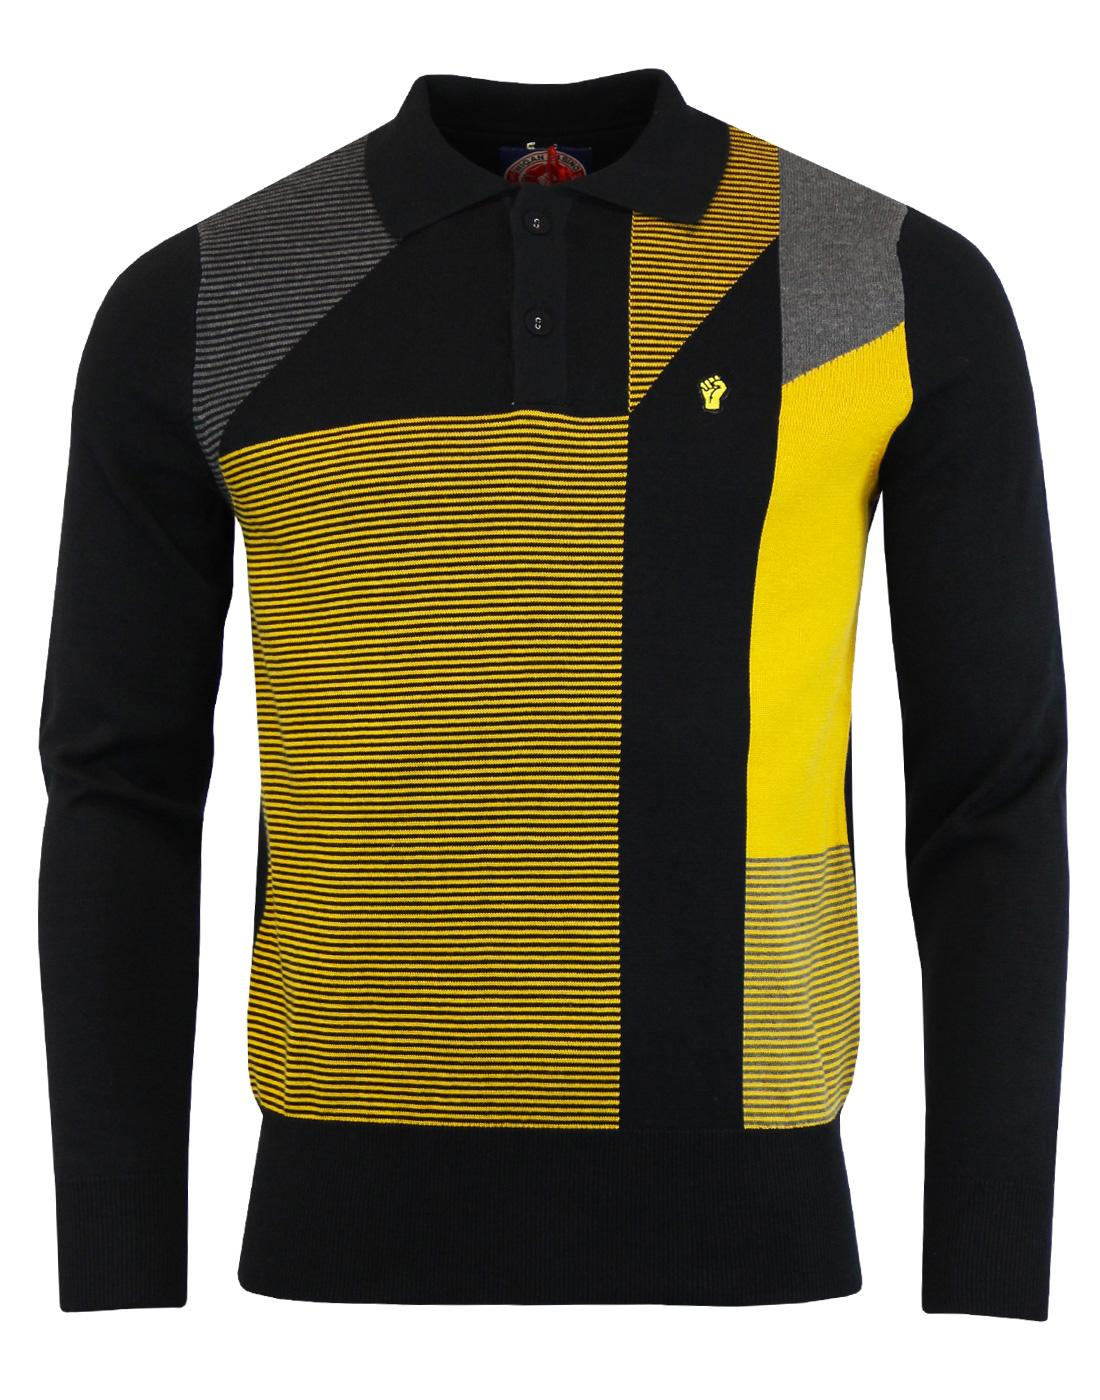 WIGAN CASINO Mod Geometric Stripe Panel Knit Polo